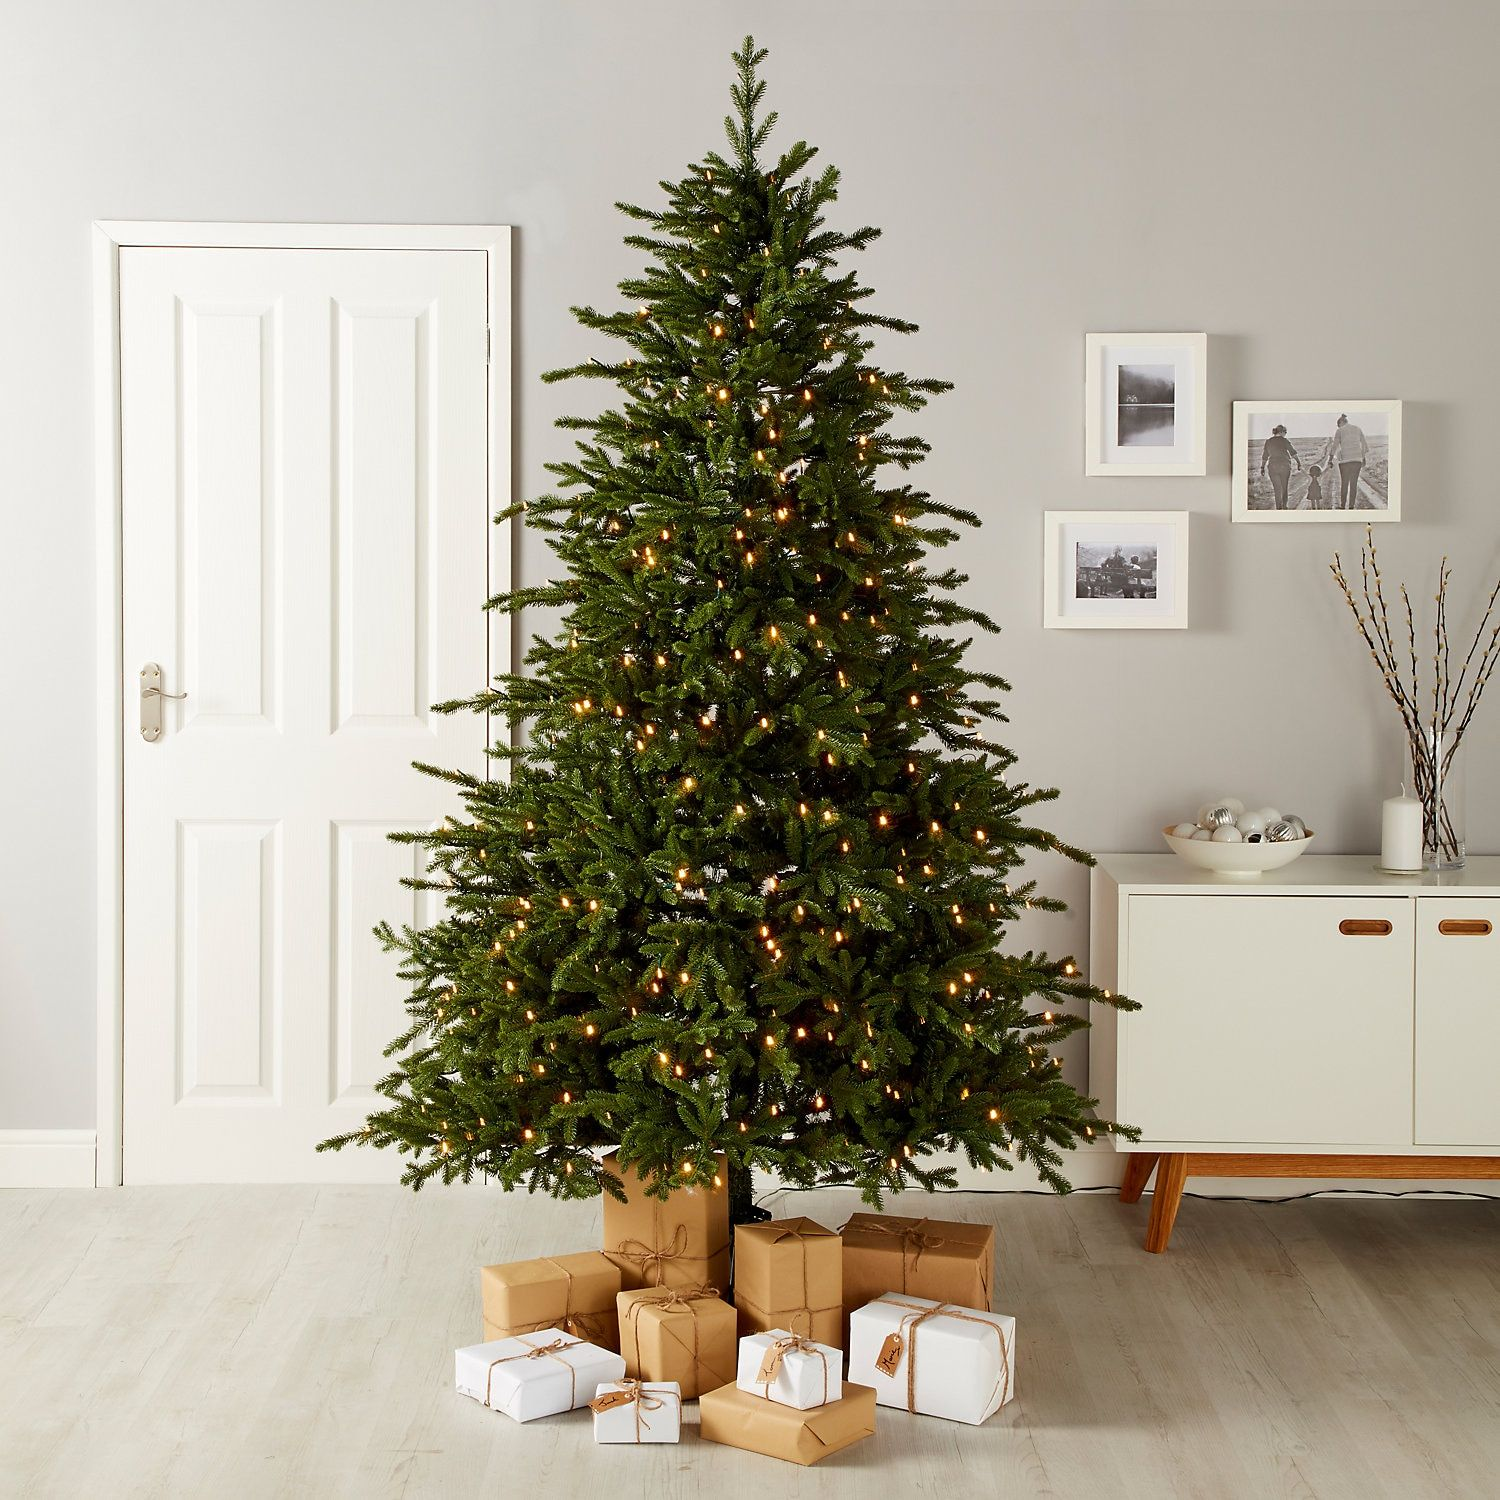 7ft 6in Thetford Pre Lit Artificial Christmas Tree Artificial Christmas Tree Realistic Artificial Christmas Trees Christmas Tree